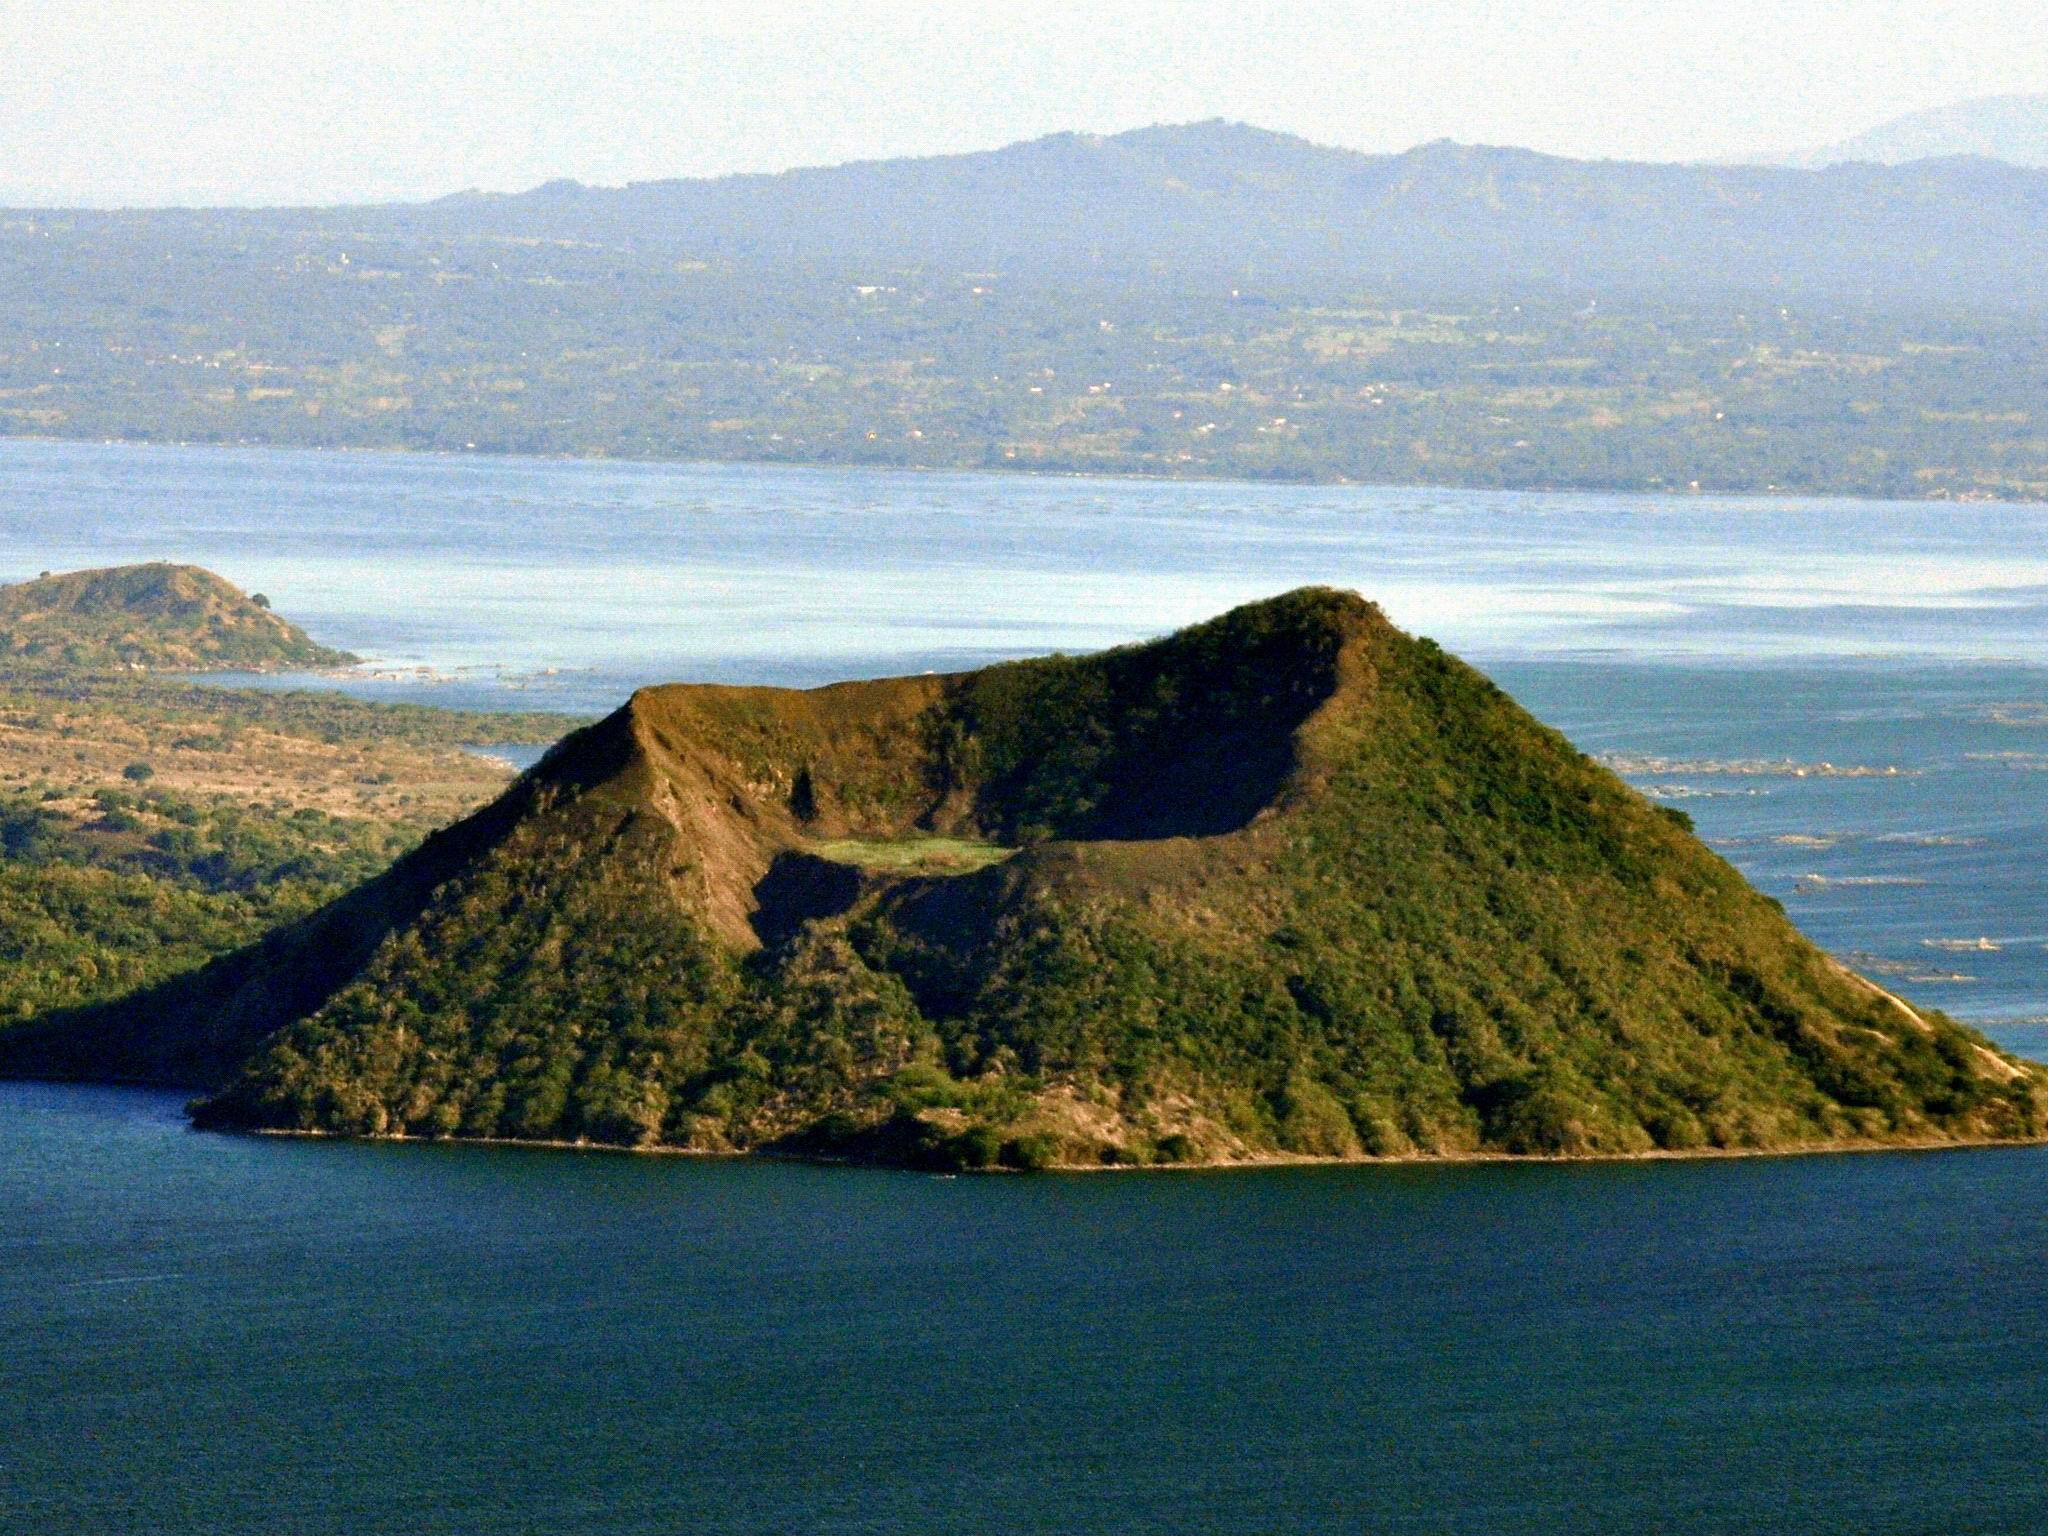 Taal Volcano, Philippines - most famous volcanoes